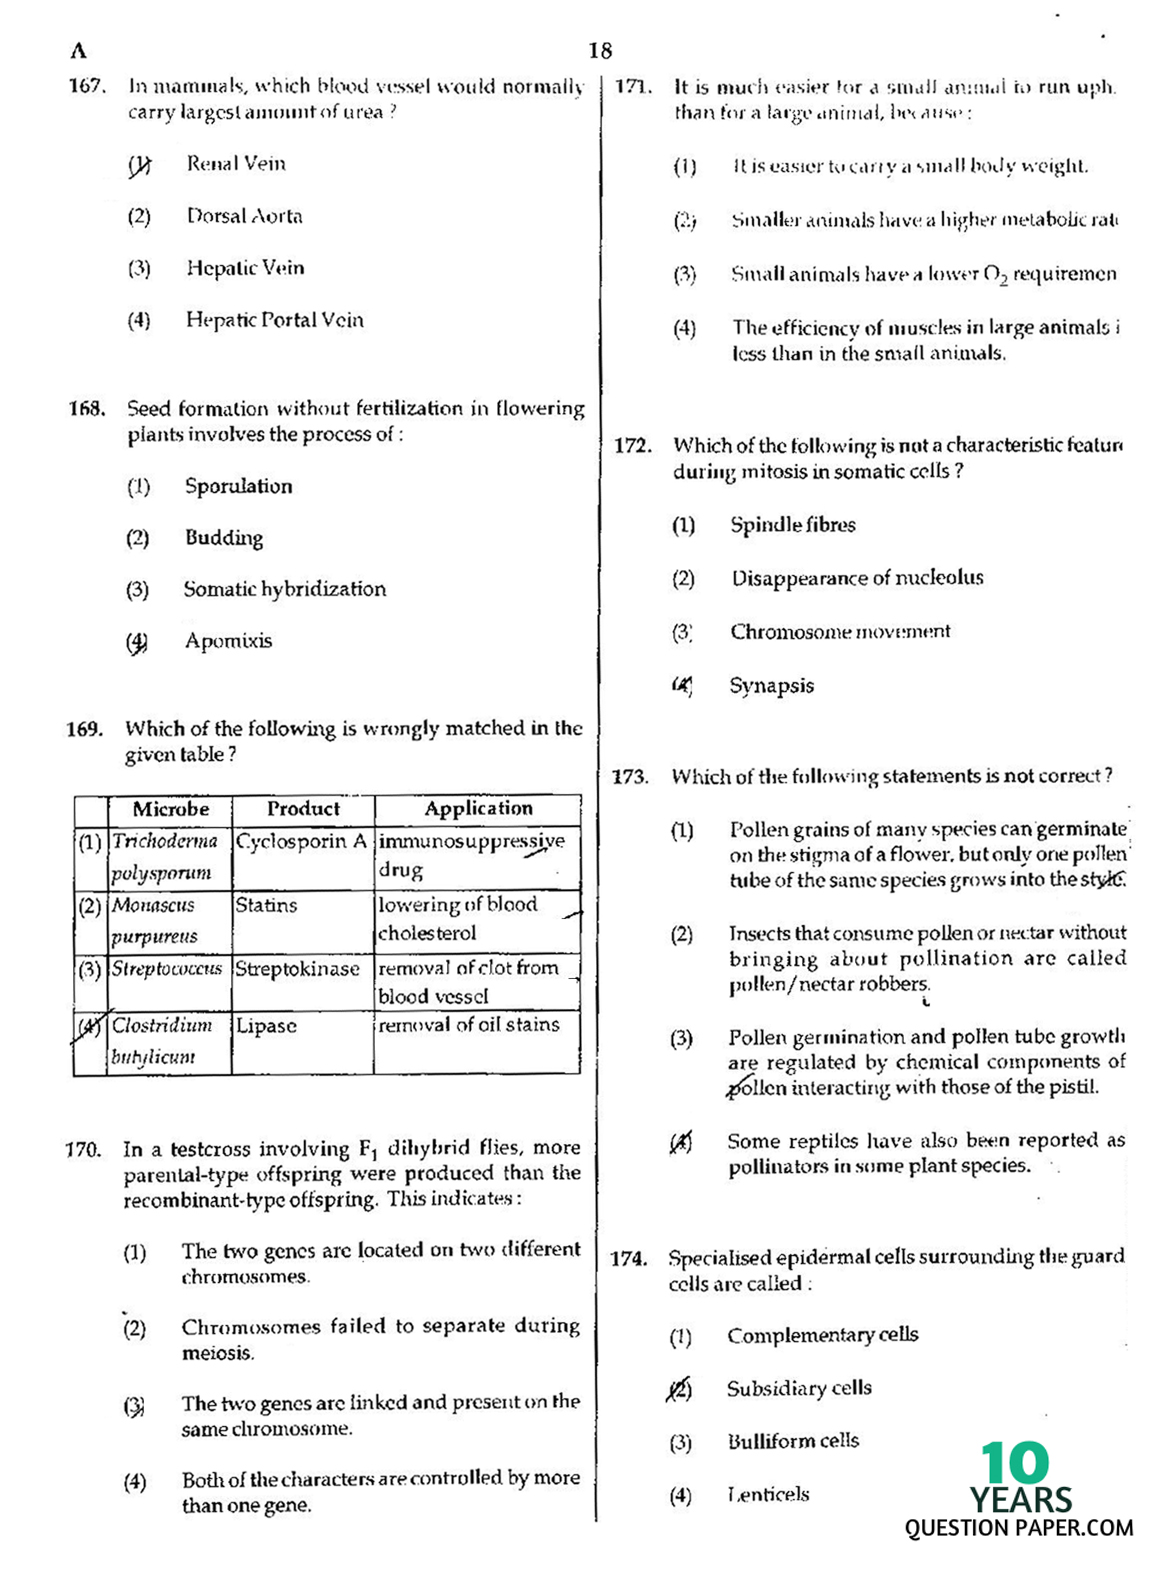 CBSE NEET 2016 question paper